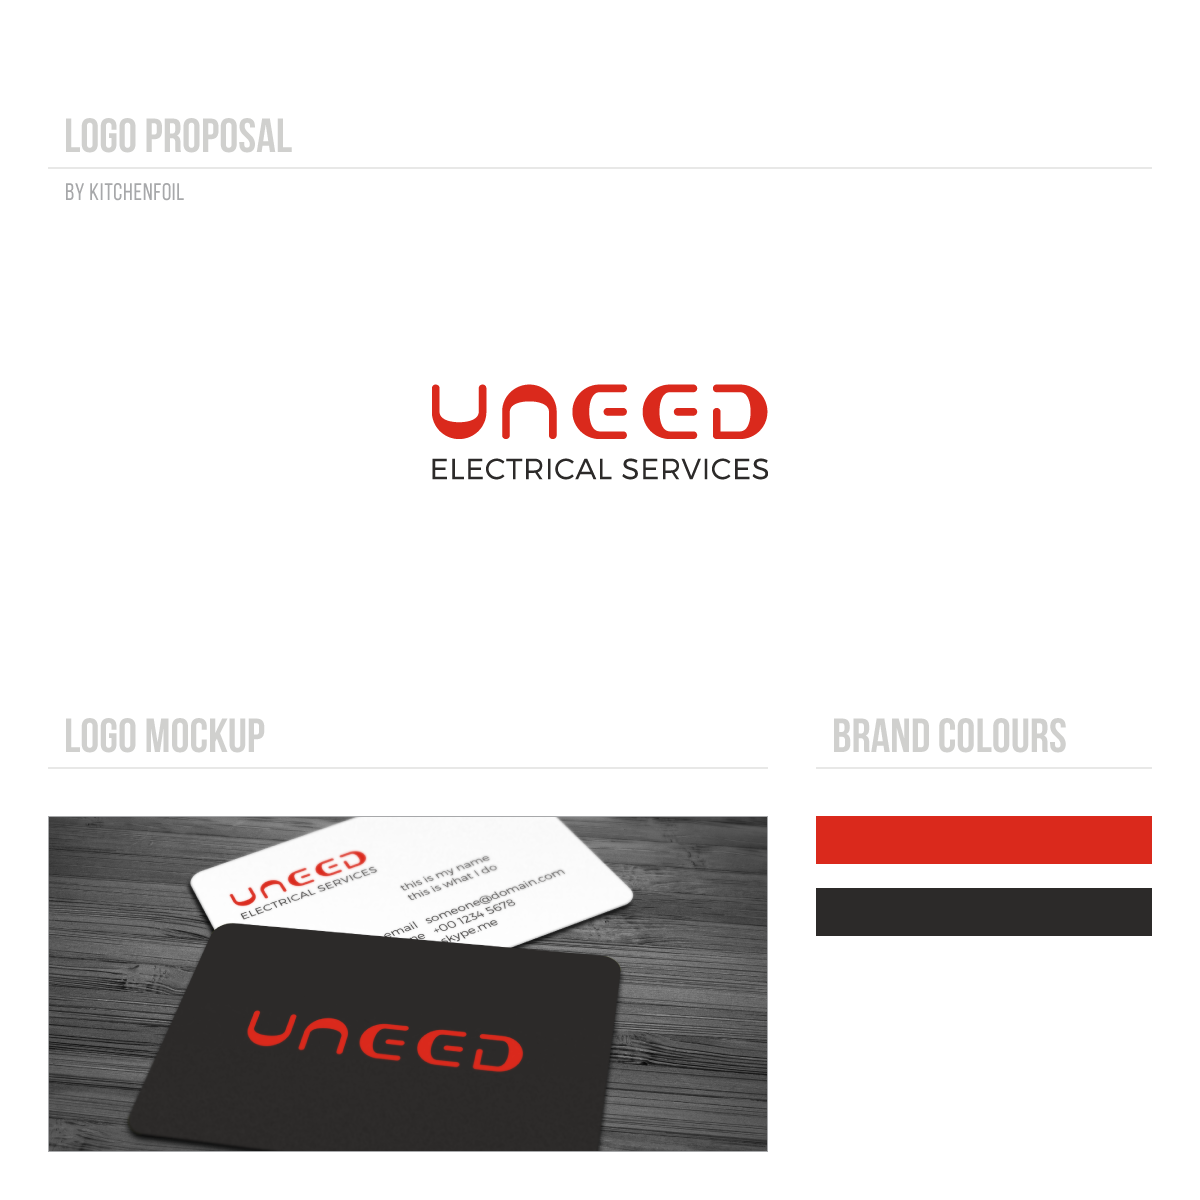 Serious professional electrician logo and business card design for logo and business card design by kitchenfoil for uneed electrical service design 9757127 colourmoves